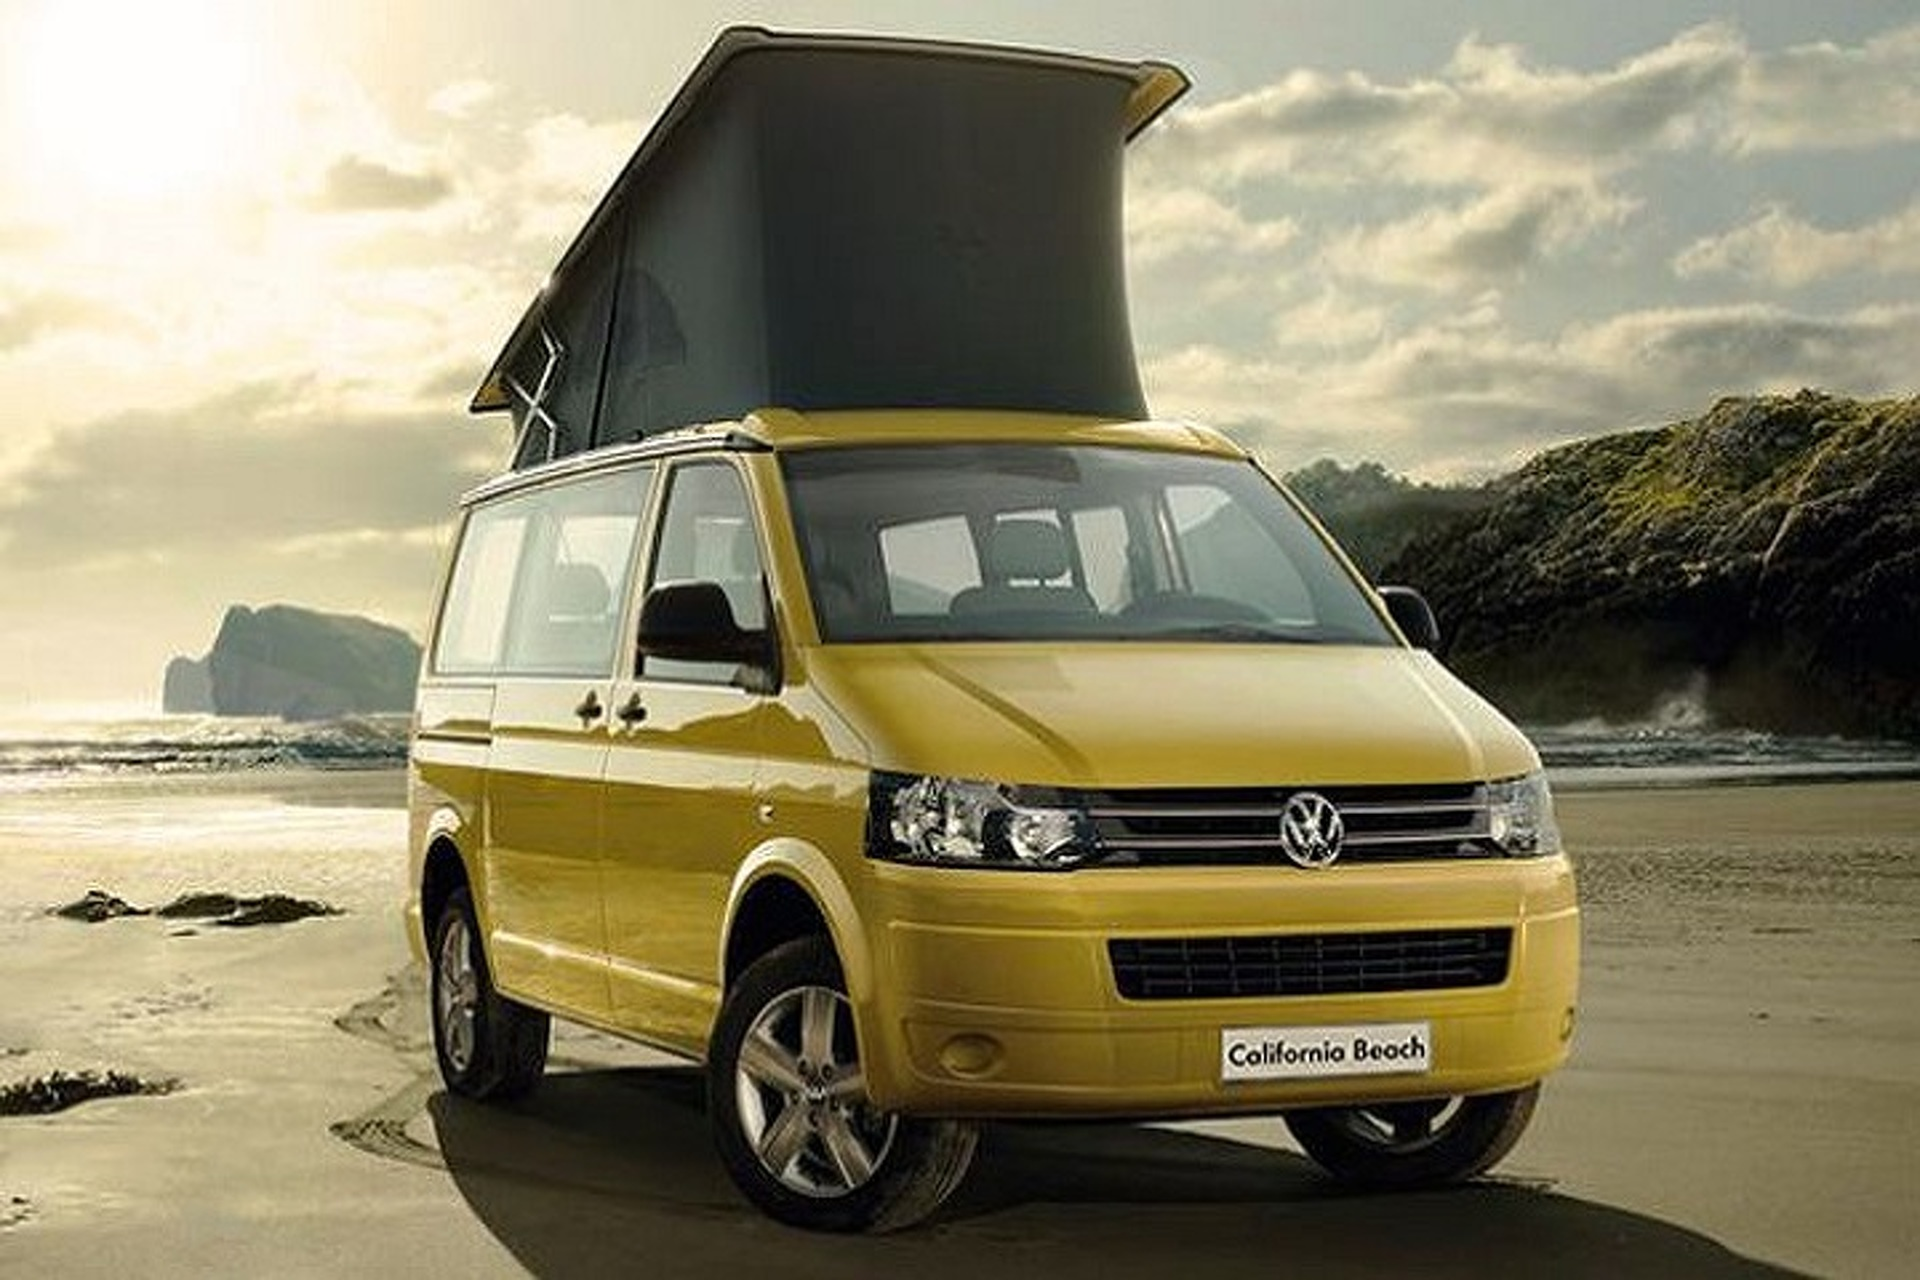 architecture limited camper dream green innovation looks children edition like true adorable s a inhabitat volkswagen page vw come bed inspired bus design